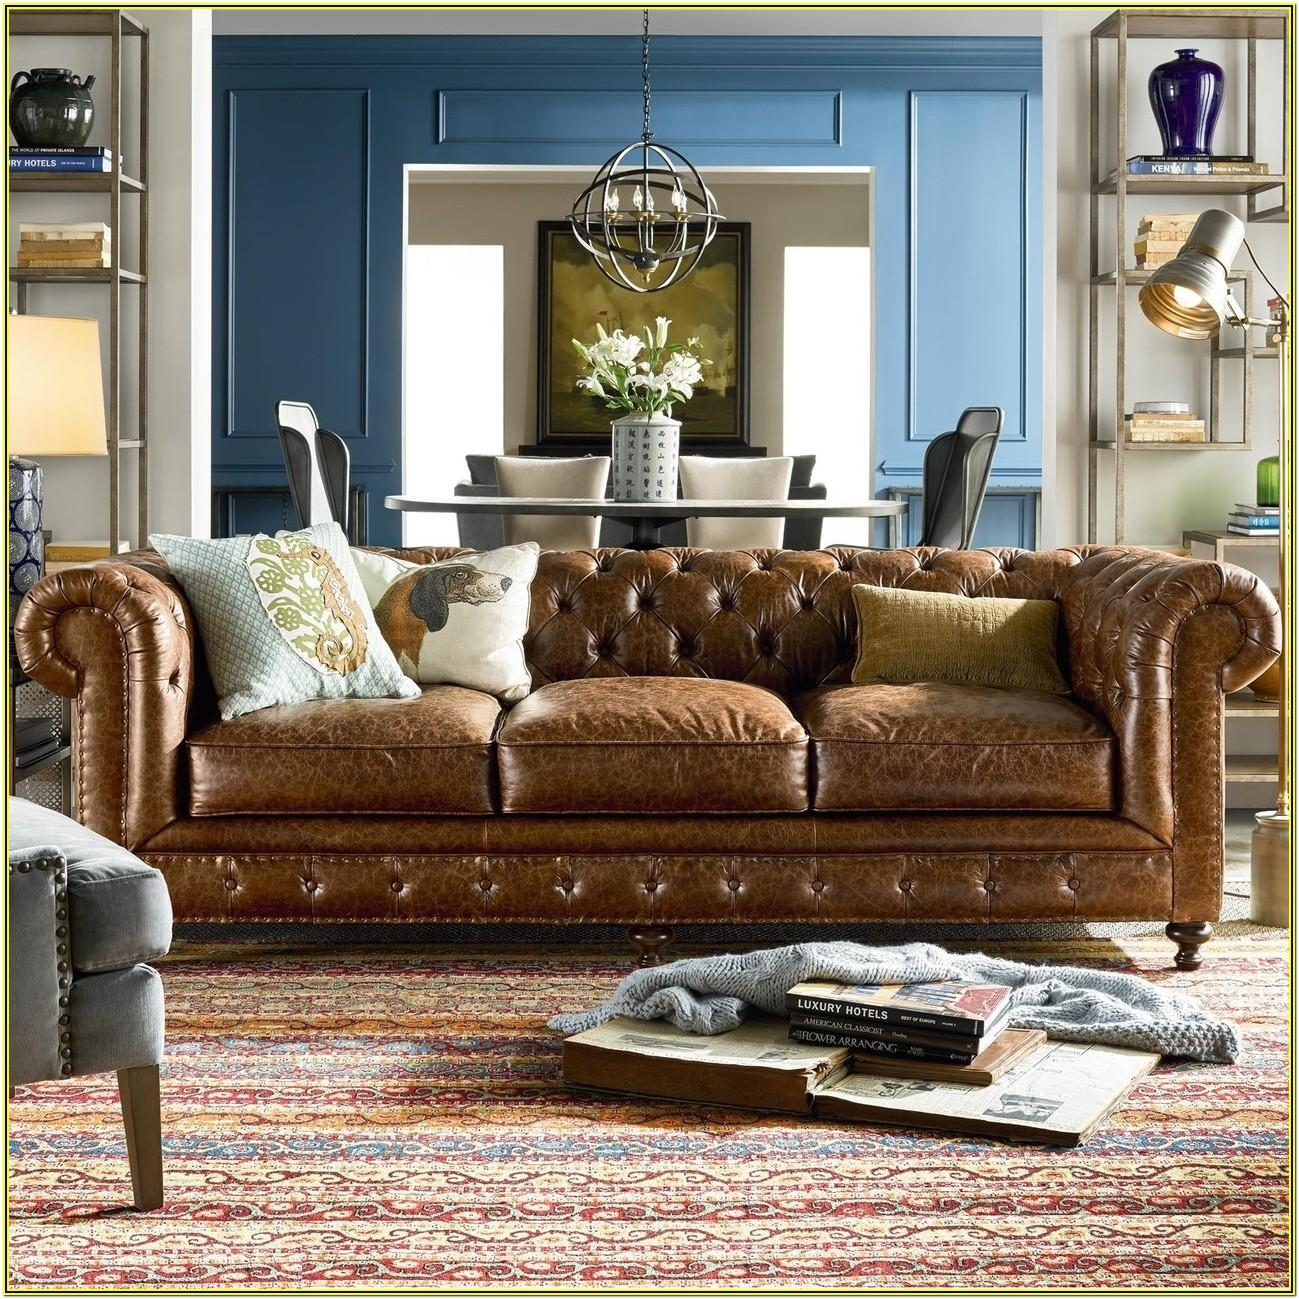 Living Room Ideas With Leather Chesterfield Sofa